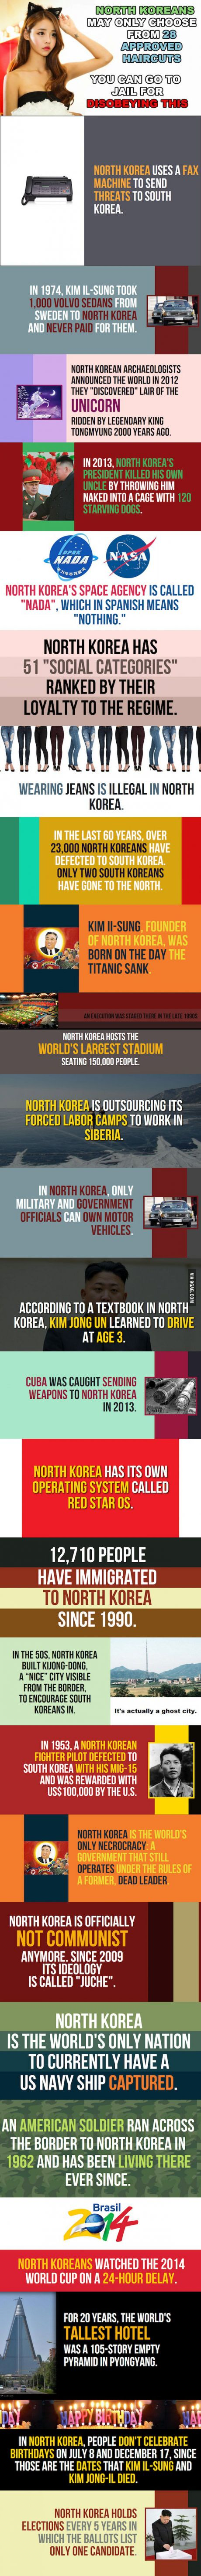 Here's some fun facts about North Korea